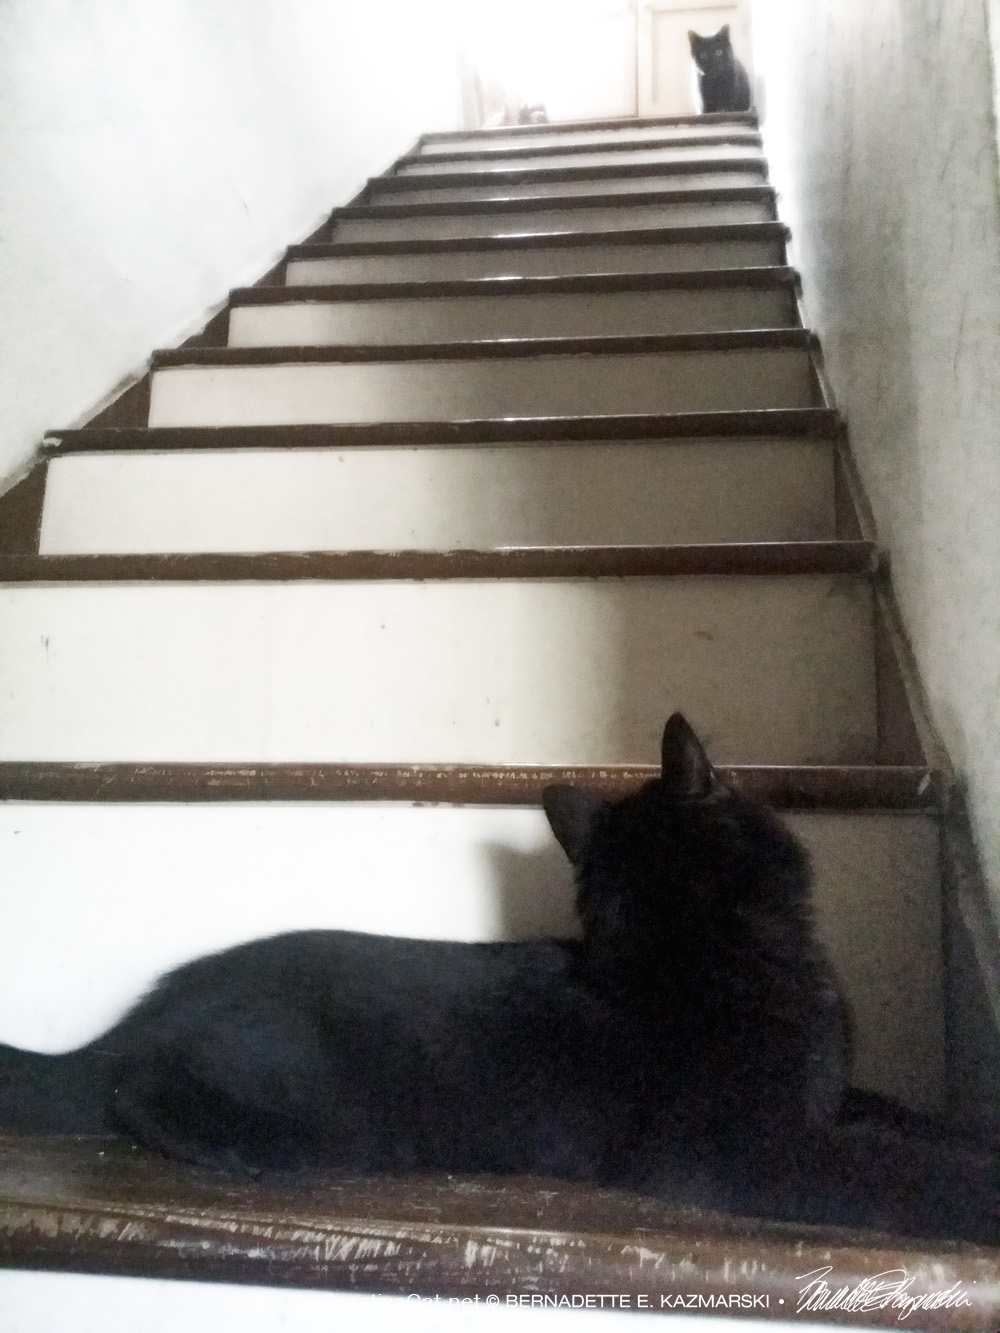 two black cats on stairs